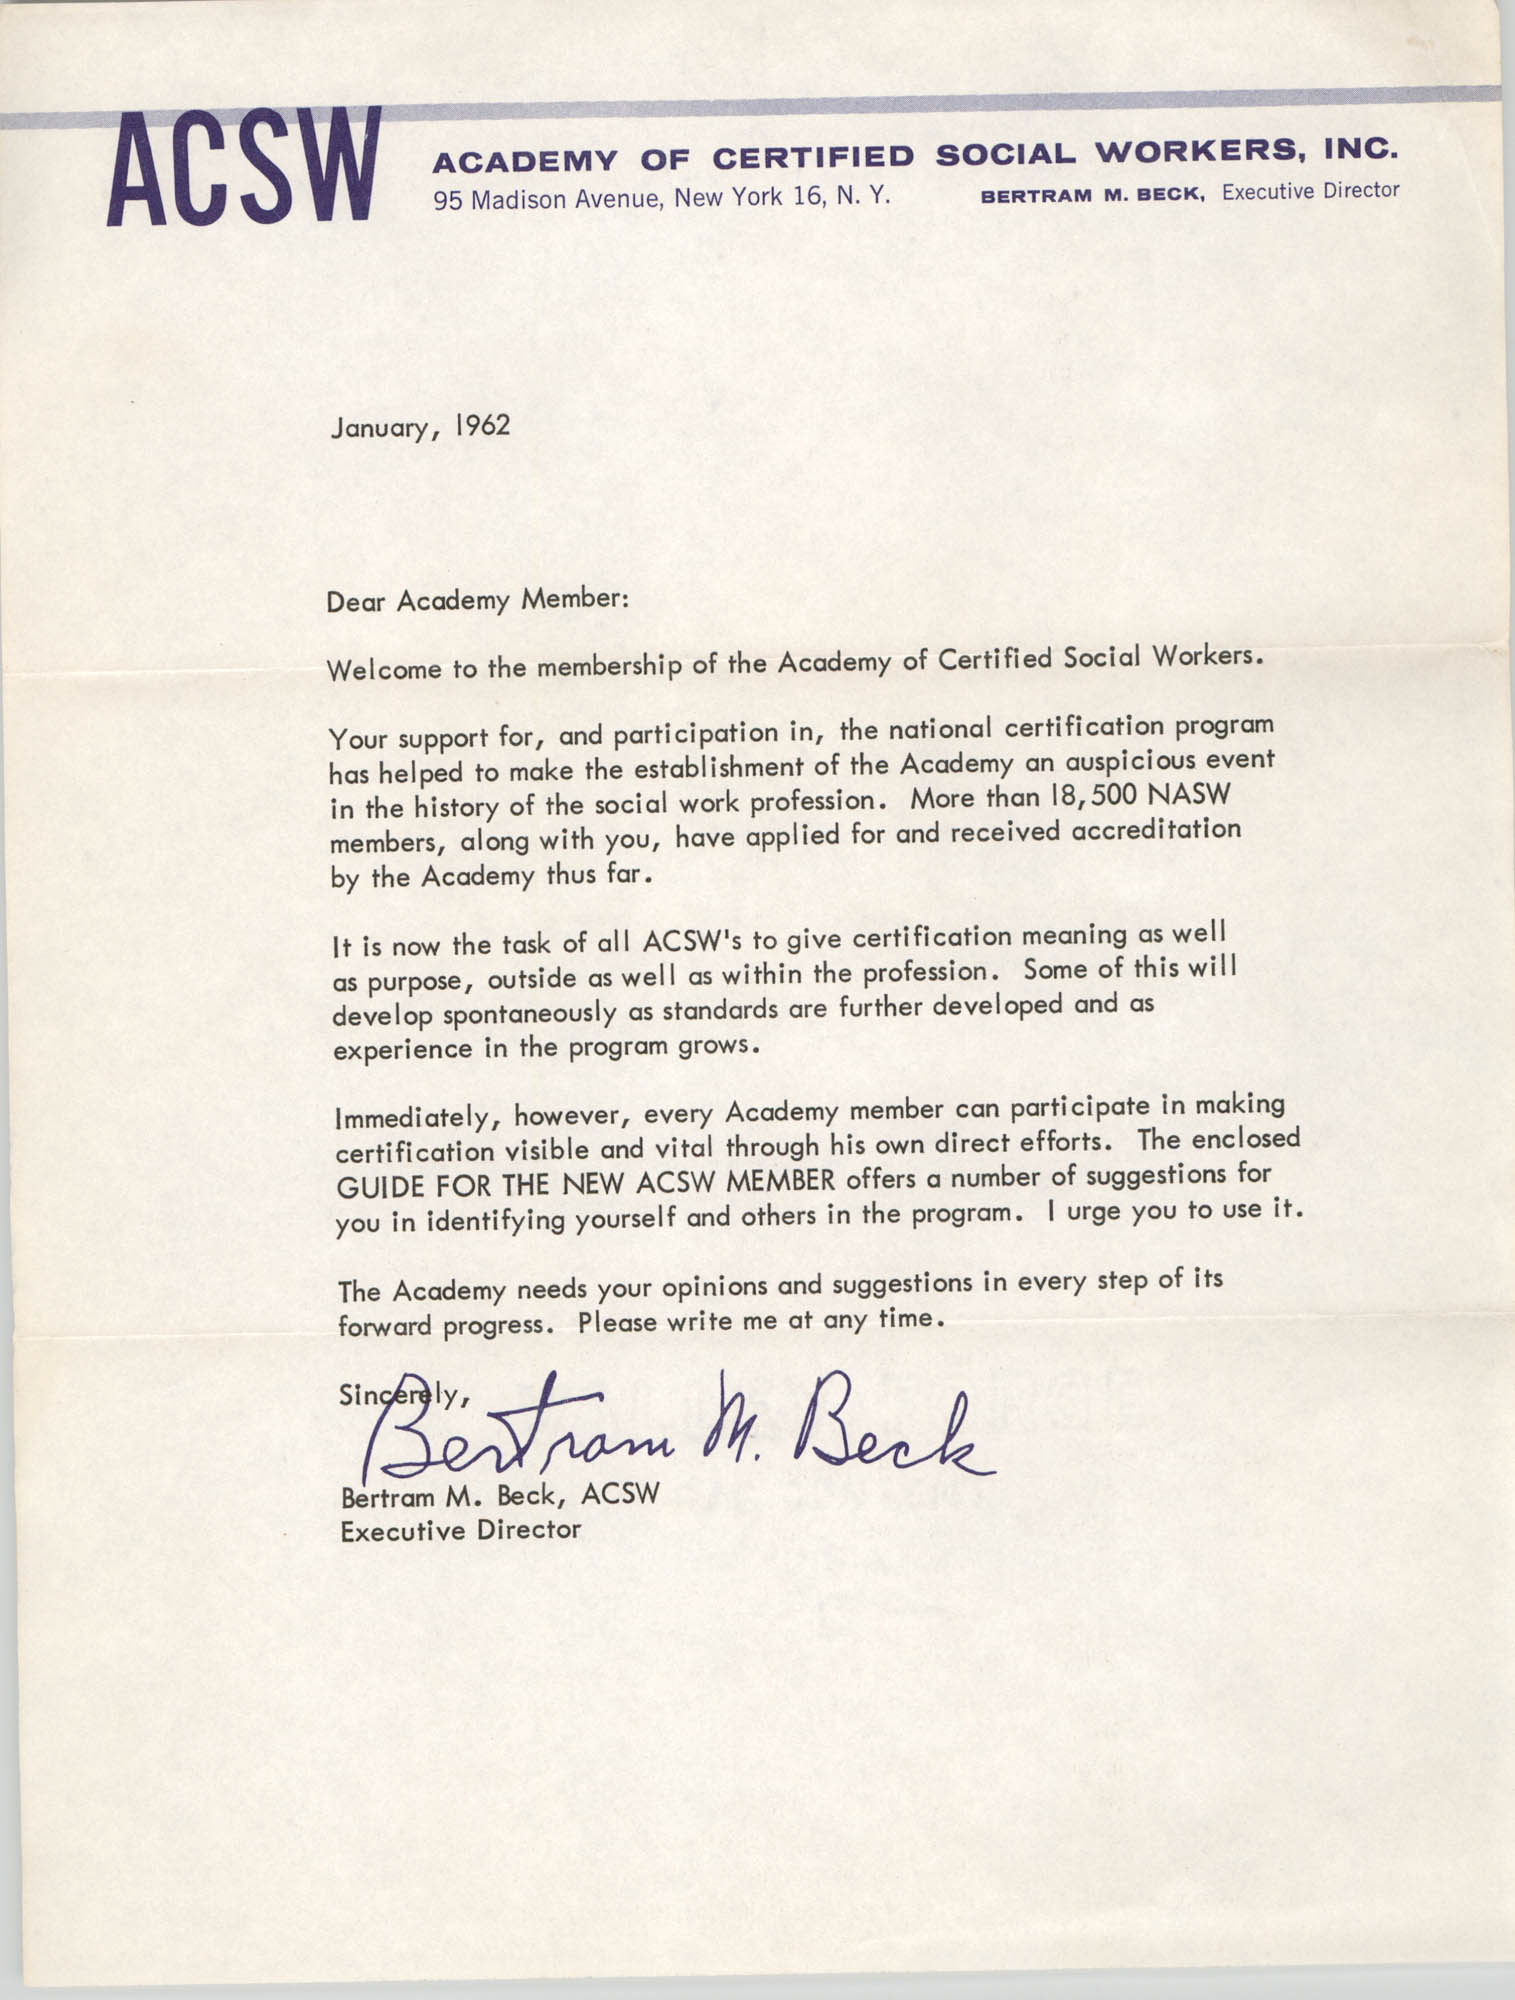 Letter from the Academy of Certified Social Workers, Inc., January 1962